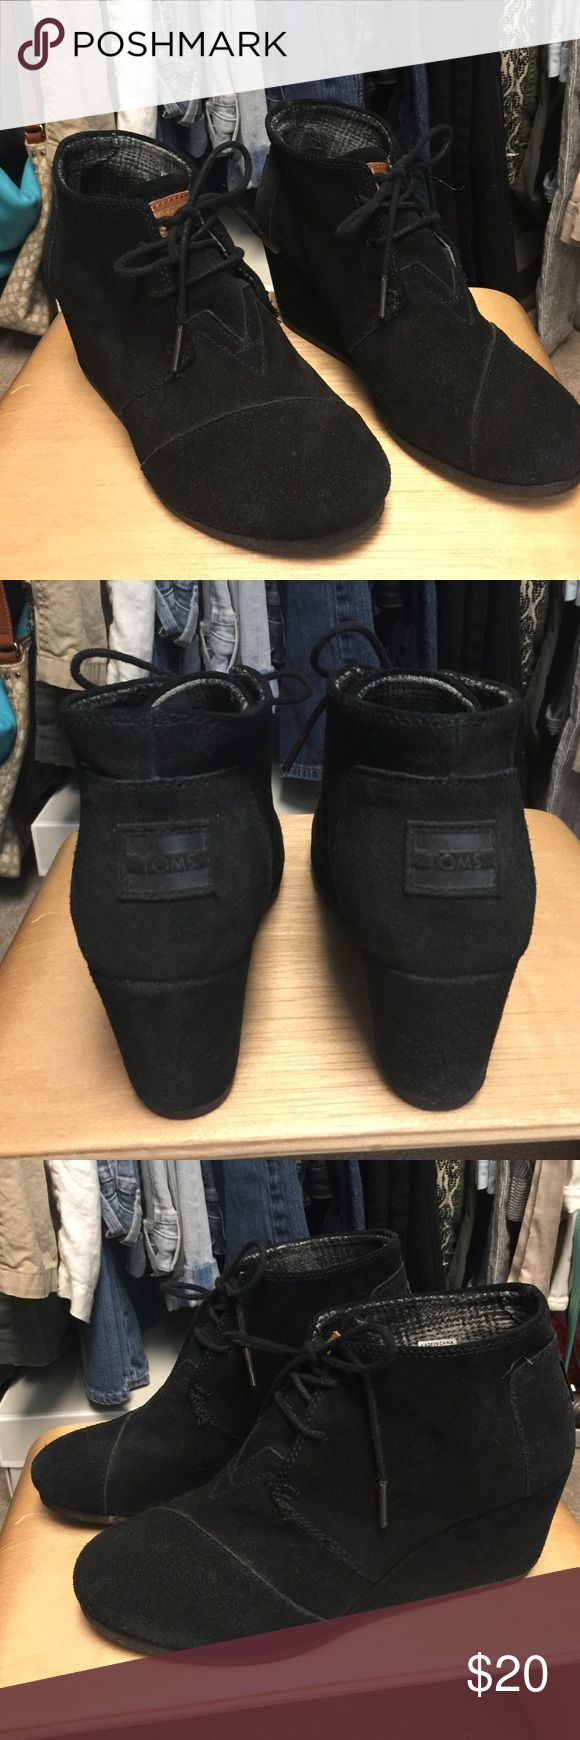 TOMS Black Suede Wedge Bootie Size 8 Used TOMS black suede bootie wedge size 8. In great condition. TOMS Shoes Ankle Boots & Booties